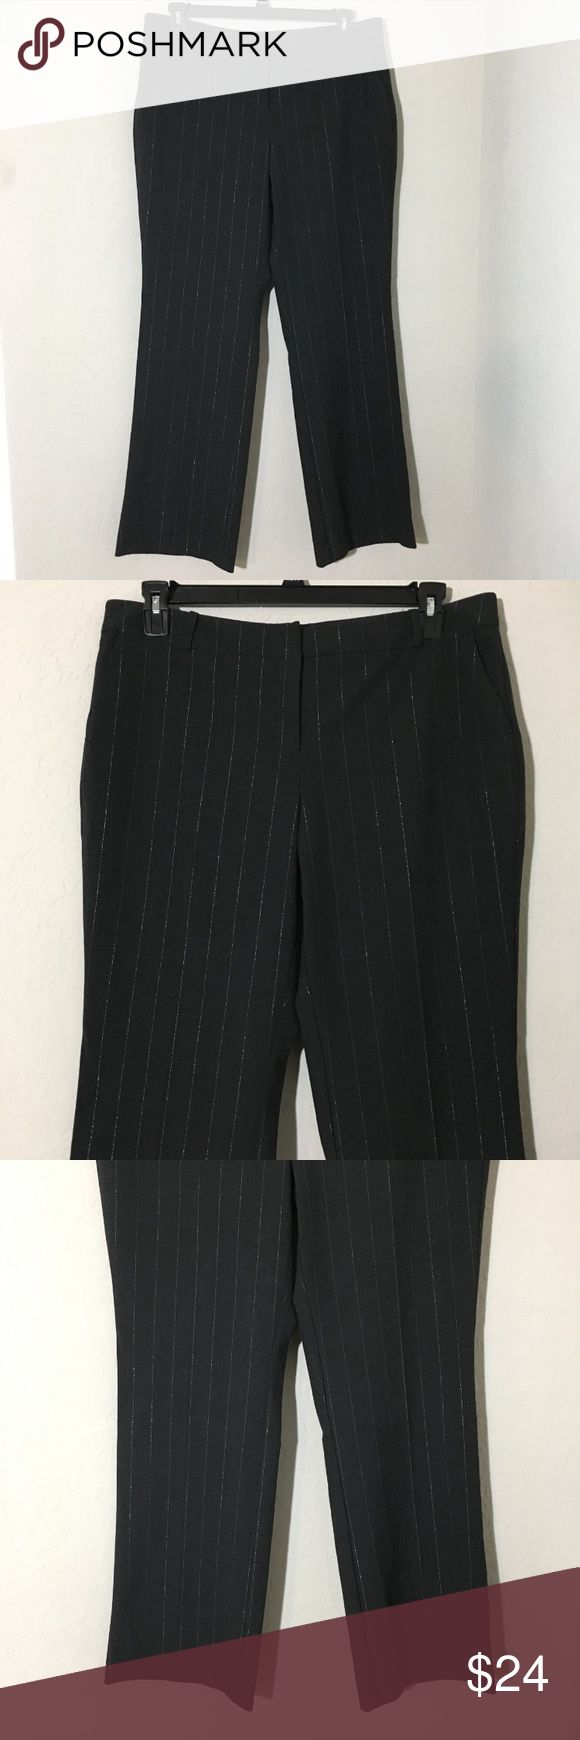 """NY&Co Trouser Dress Pants Black Silver Striped 14 Women's New York & Company black and silver striped trouser dress pants Sz 14 measurements 18"""" waist laying flat, 33"""" inseam Excellent conditions no flaws New York & Company Pants Trousers"""